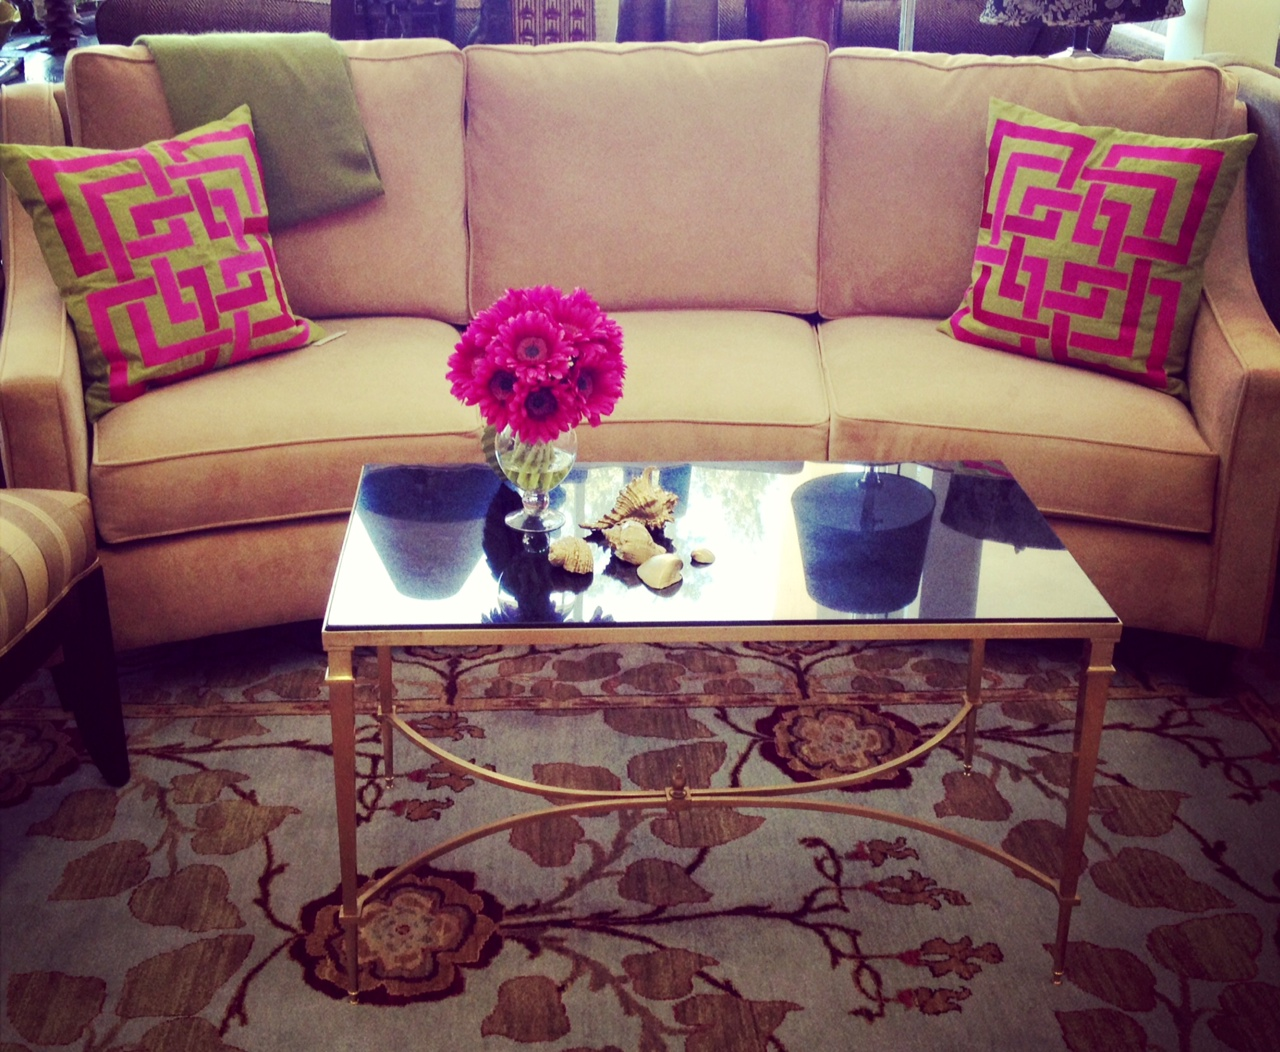 Custom Comfort Color Your World Sofas In Bold Shades Are Among Popular New Furniture Trends